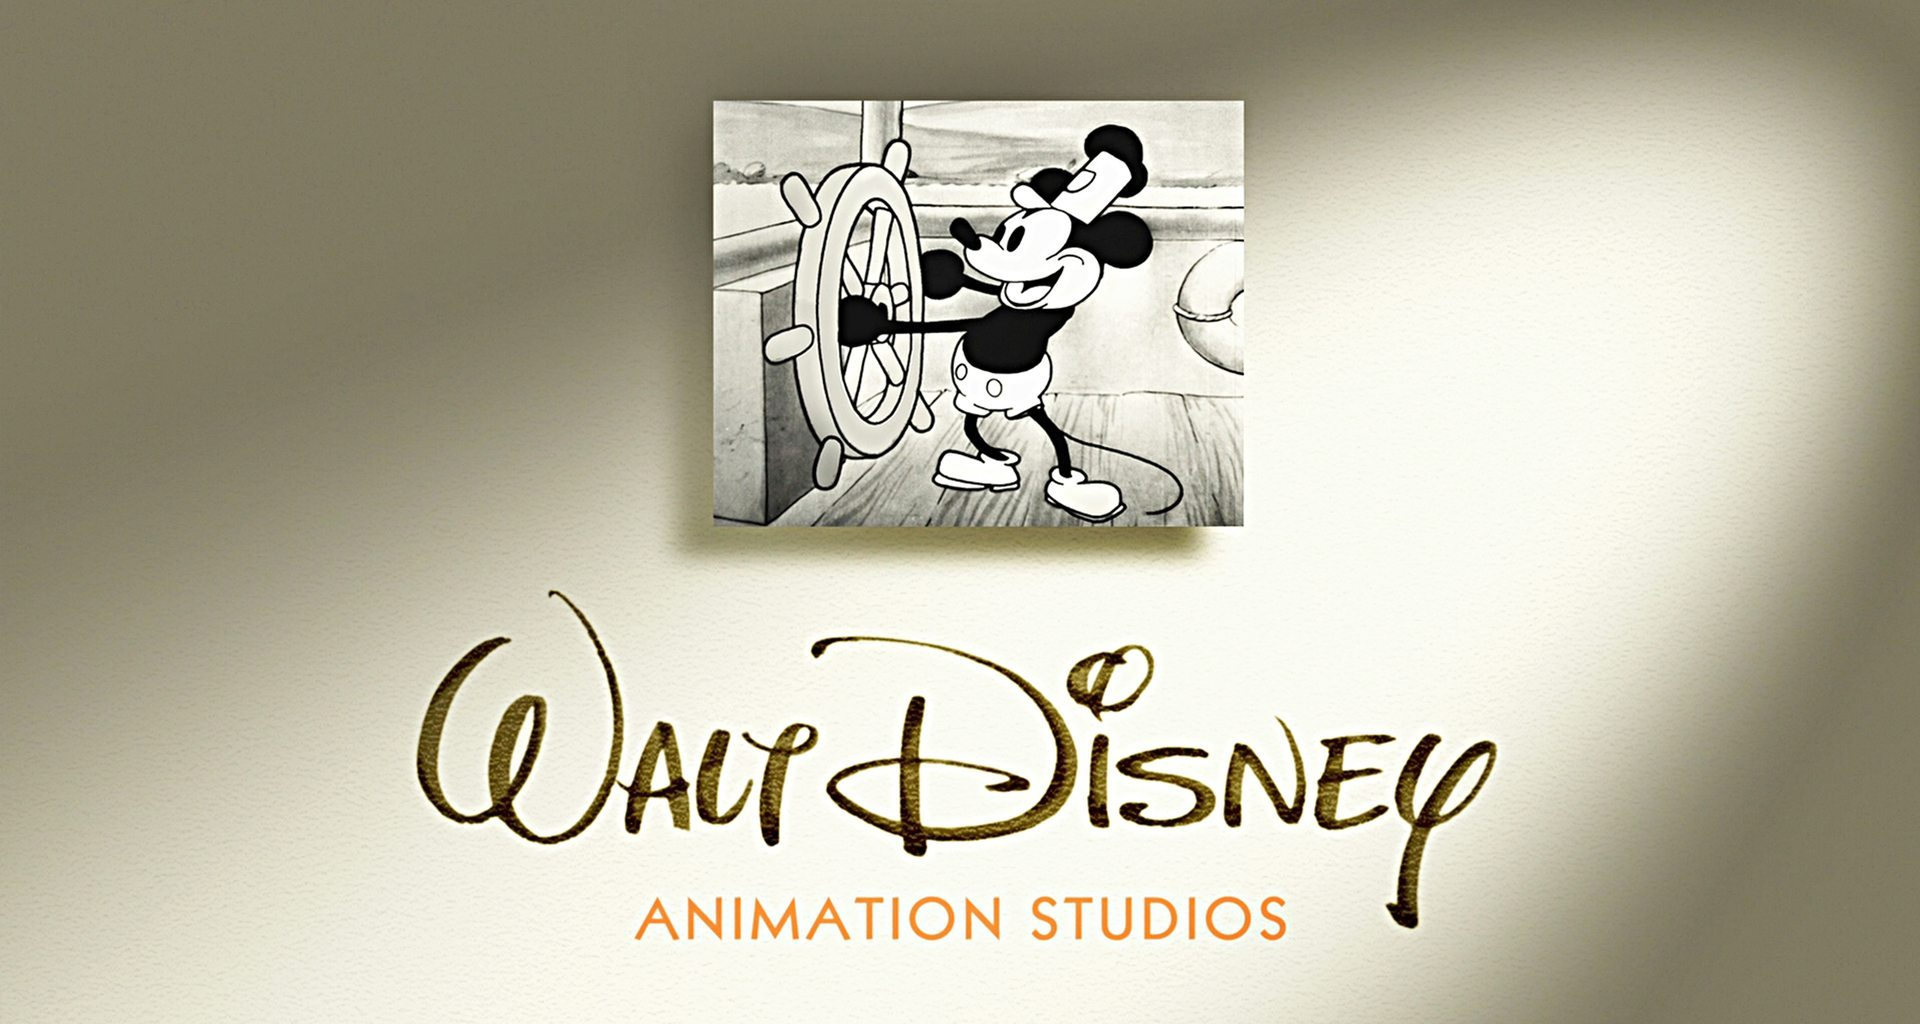 Animation Studios: Walt Disney Animation Studios